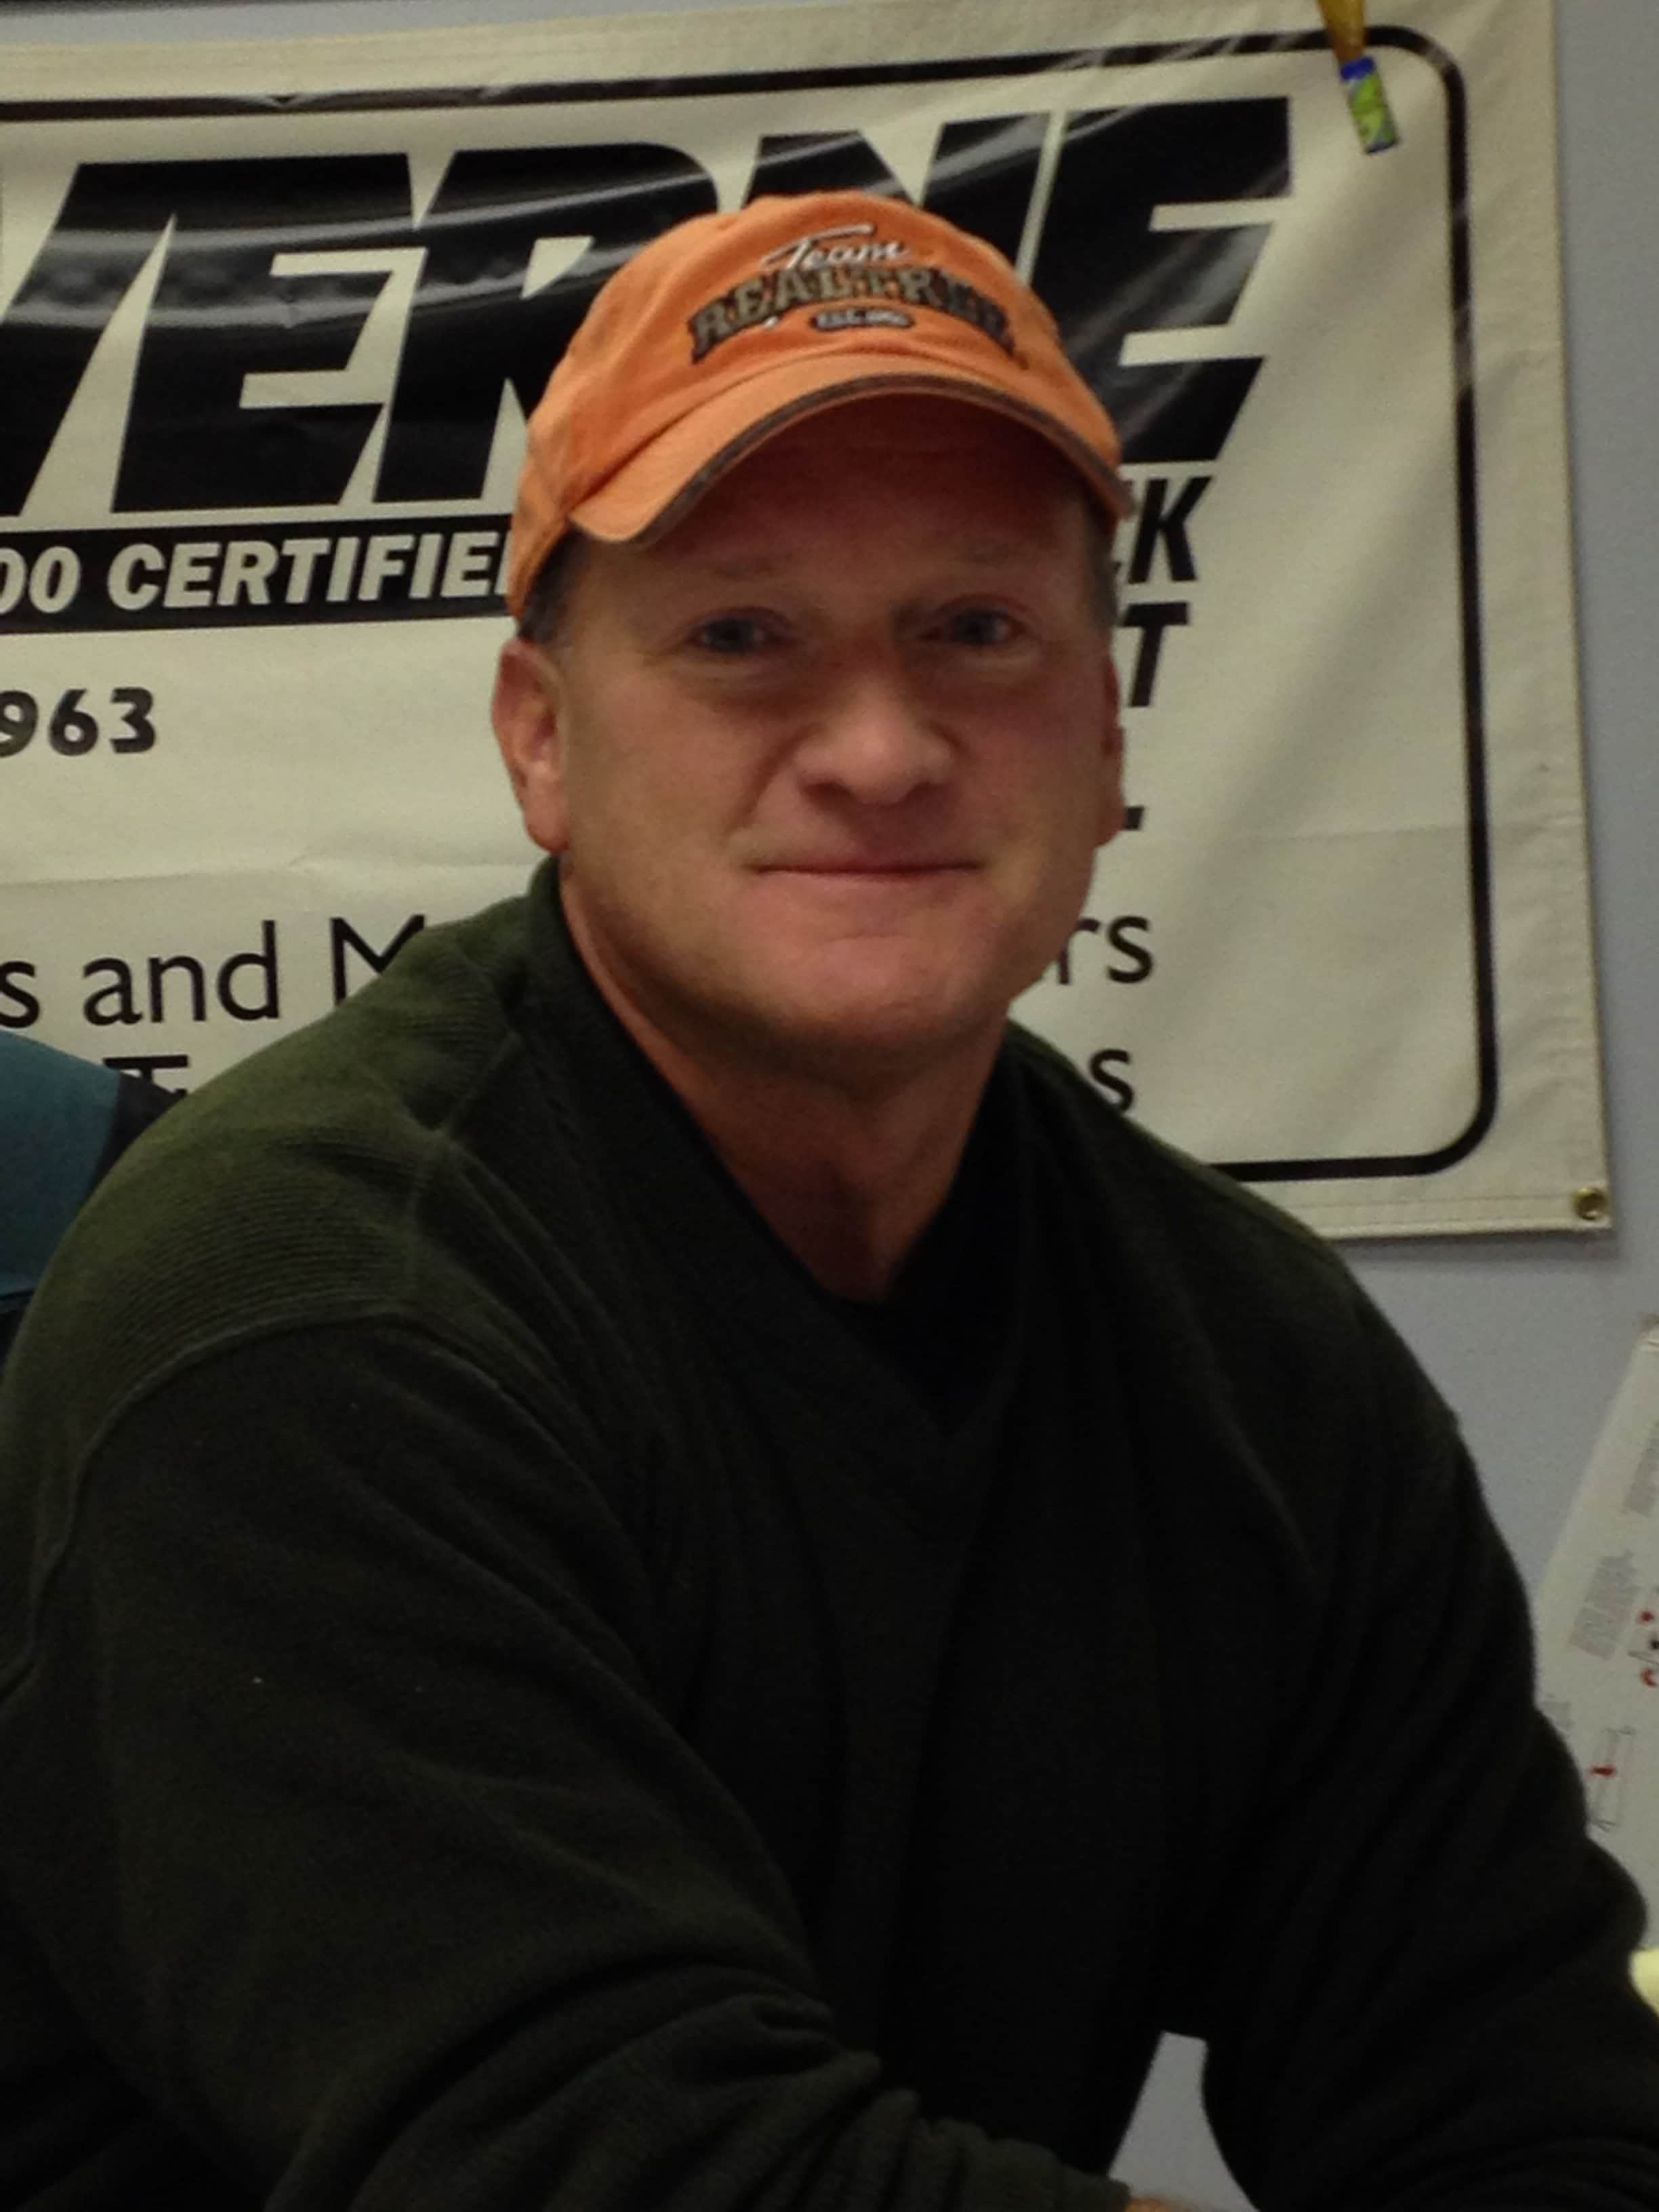 Bob Vicini  The Tire Man bvicini@kightlinger.com 814-274-9660 ext 23.JPG